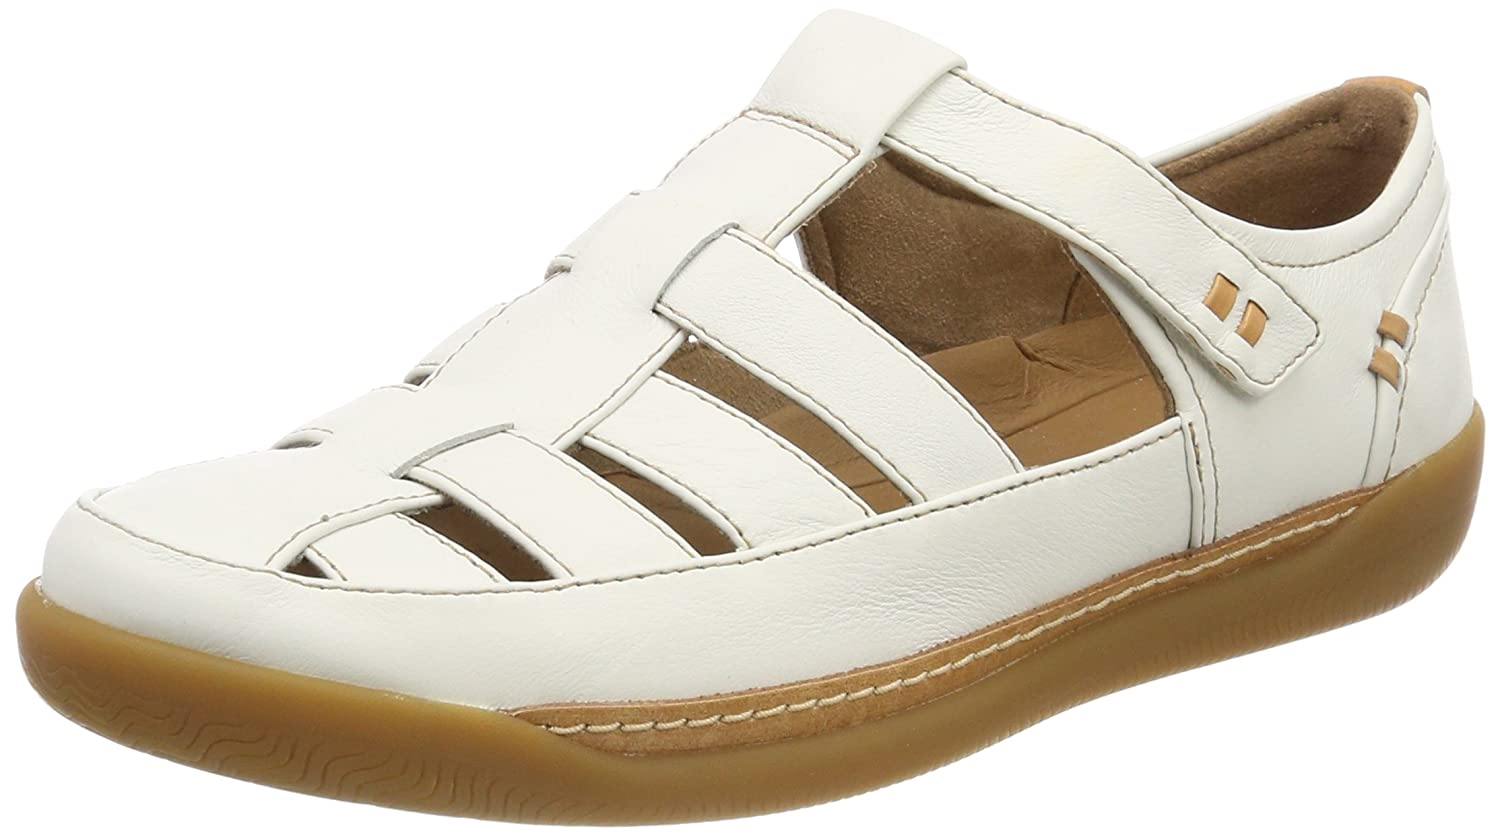 Clarks 19995 - Un casual Haven Cove - Chaussures - casual - Femme Blanc (White Leather) 50d7155 - boatplans.space